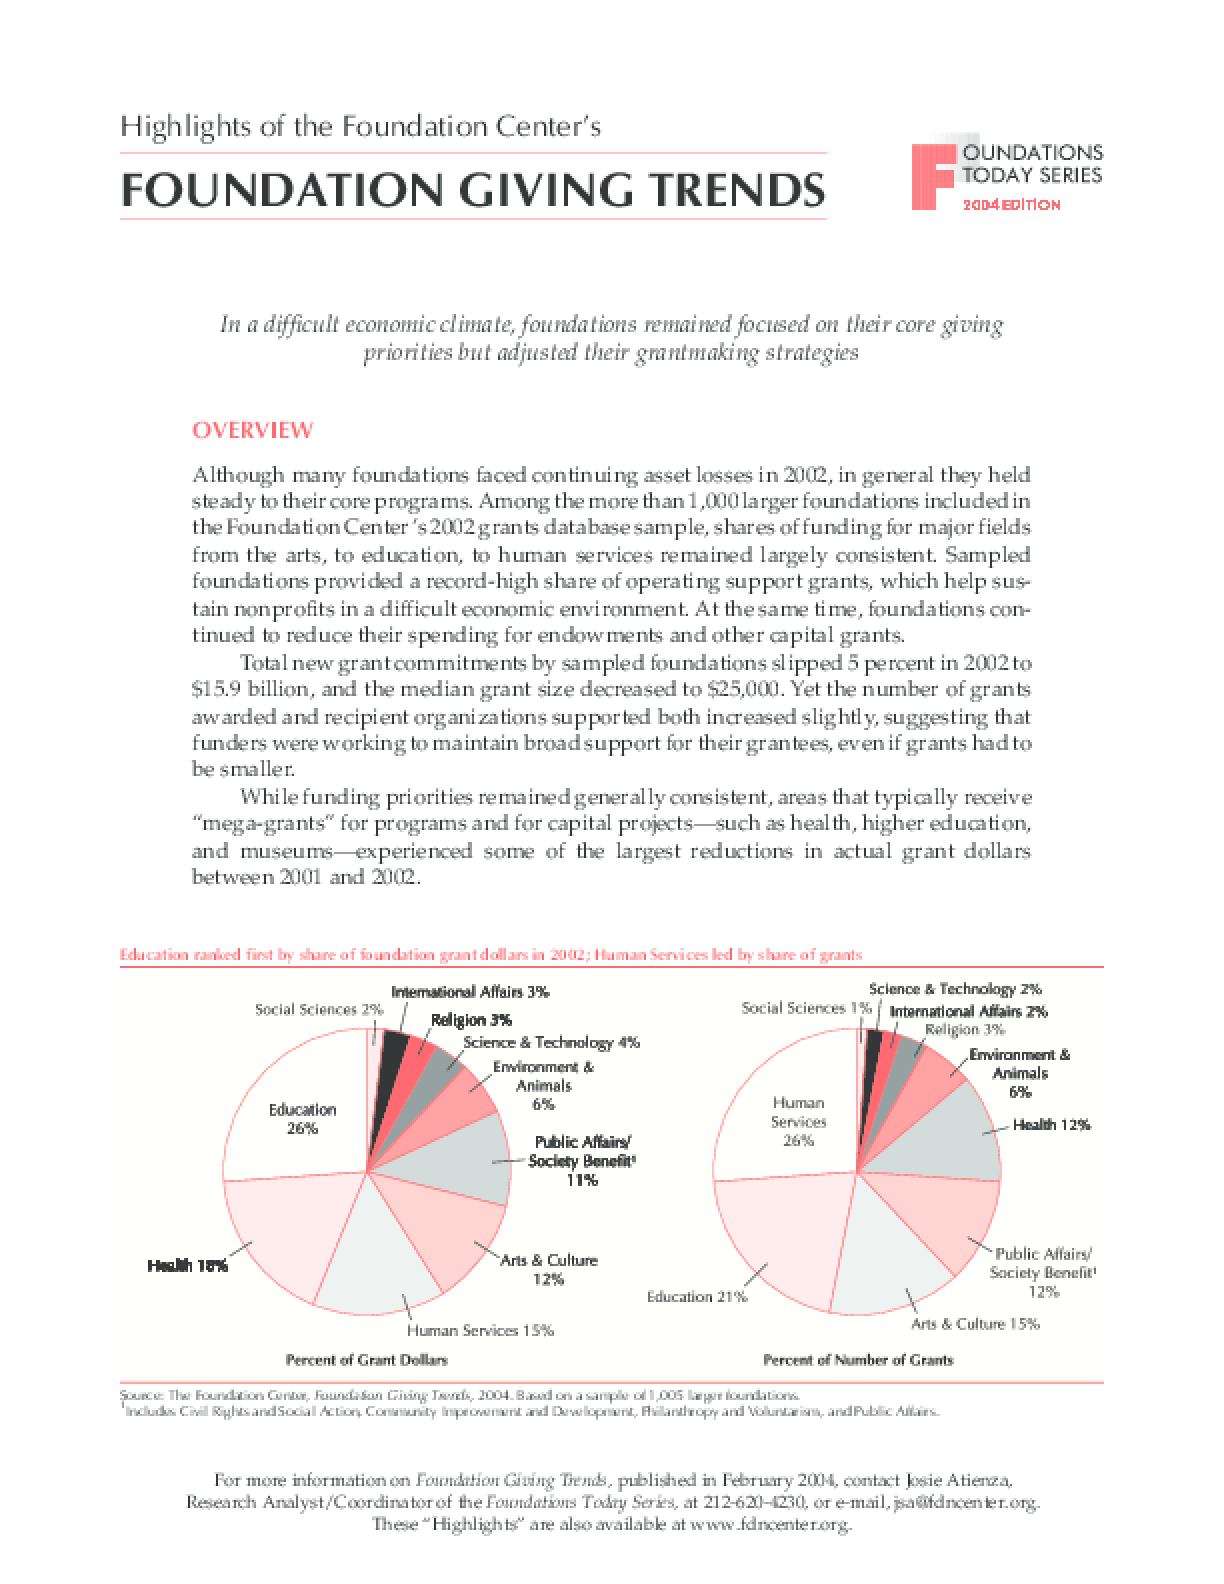 Foundations Today: Foundation Giving Trends, 2004 edition (Highlights)